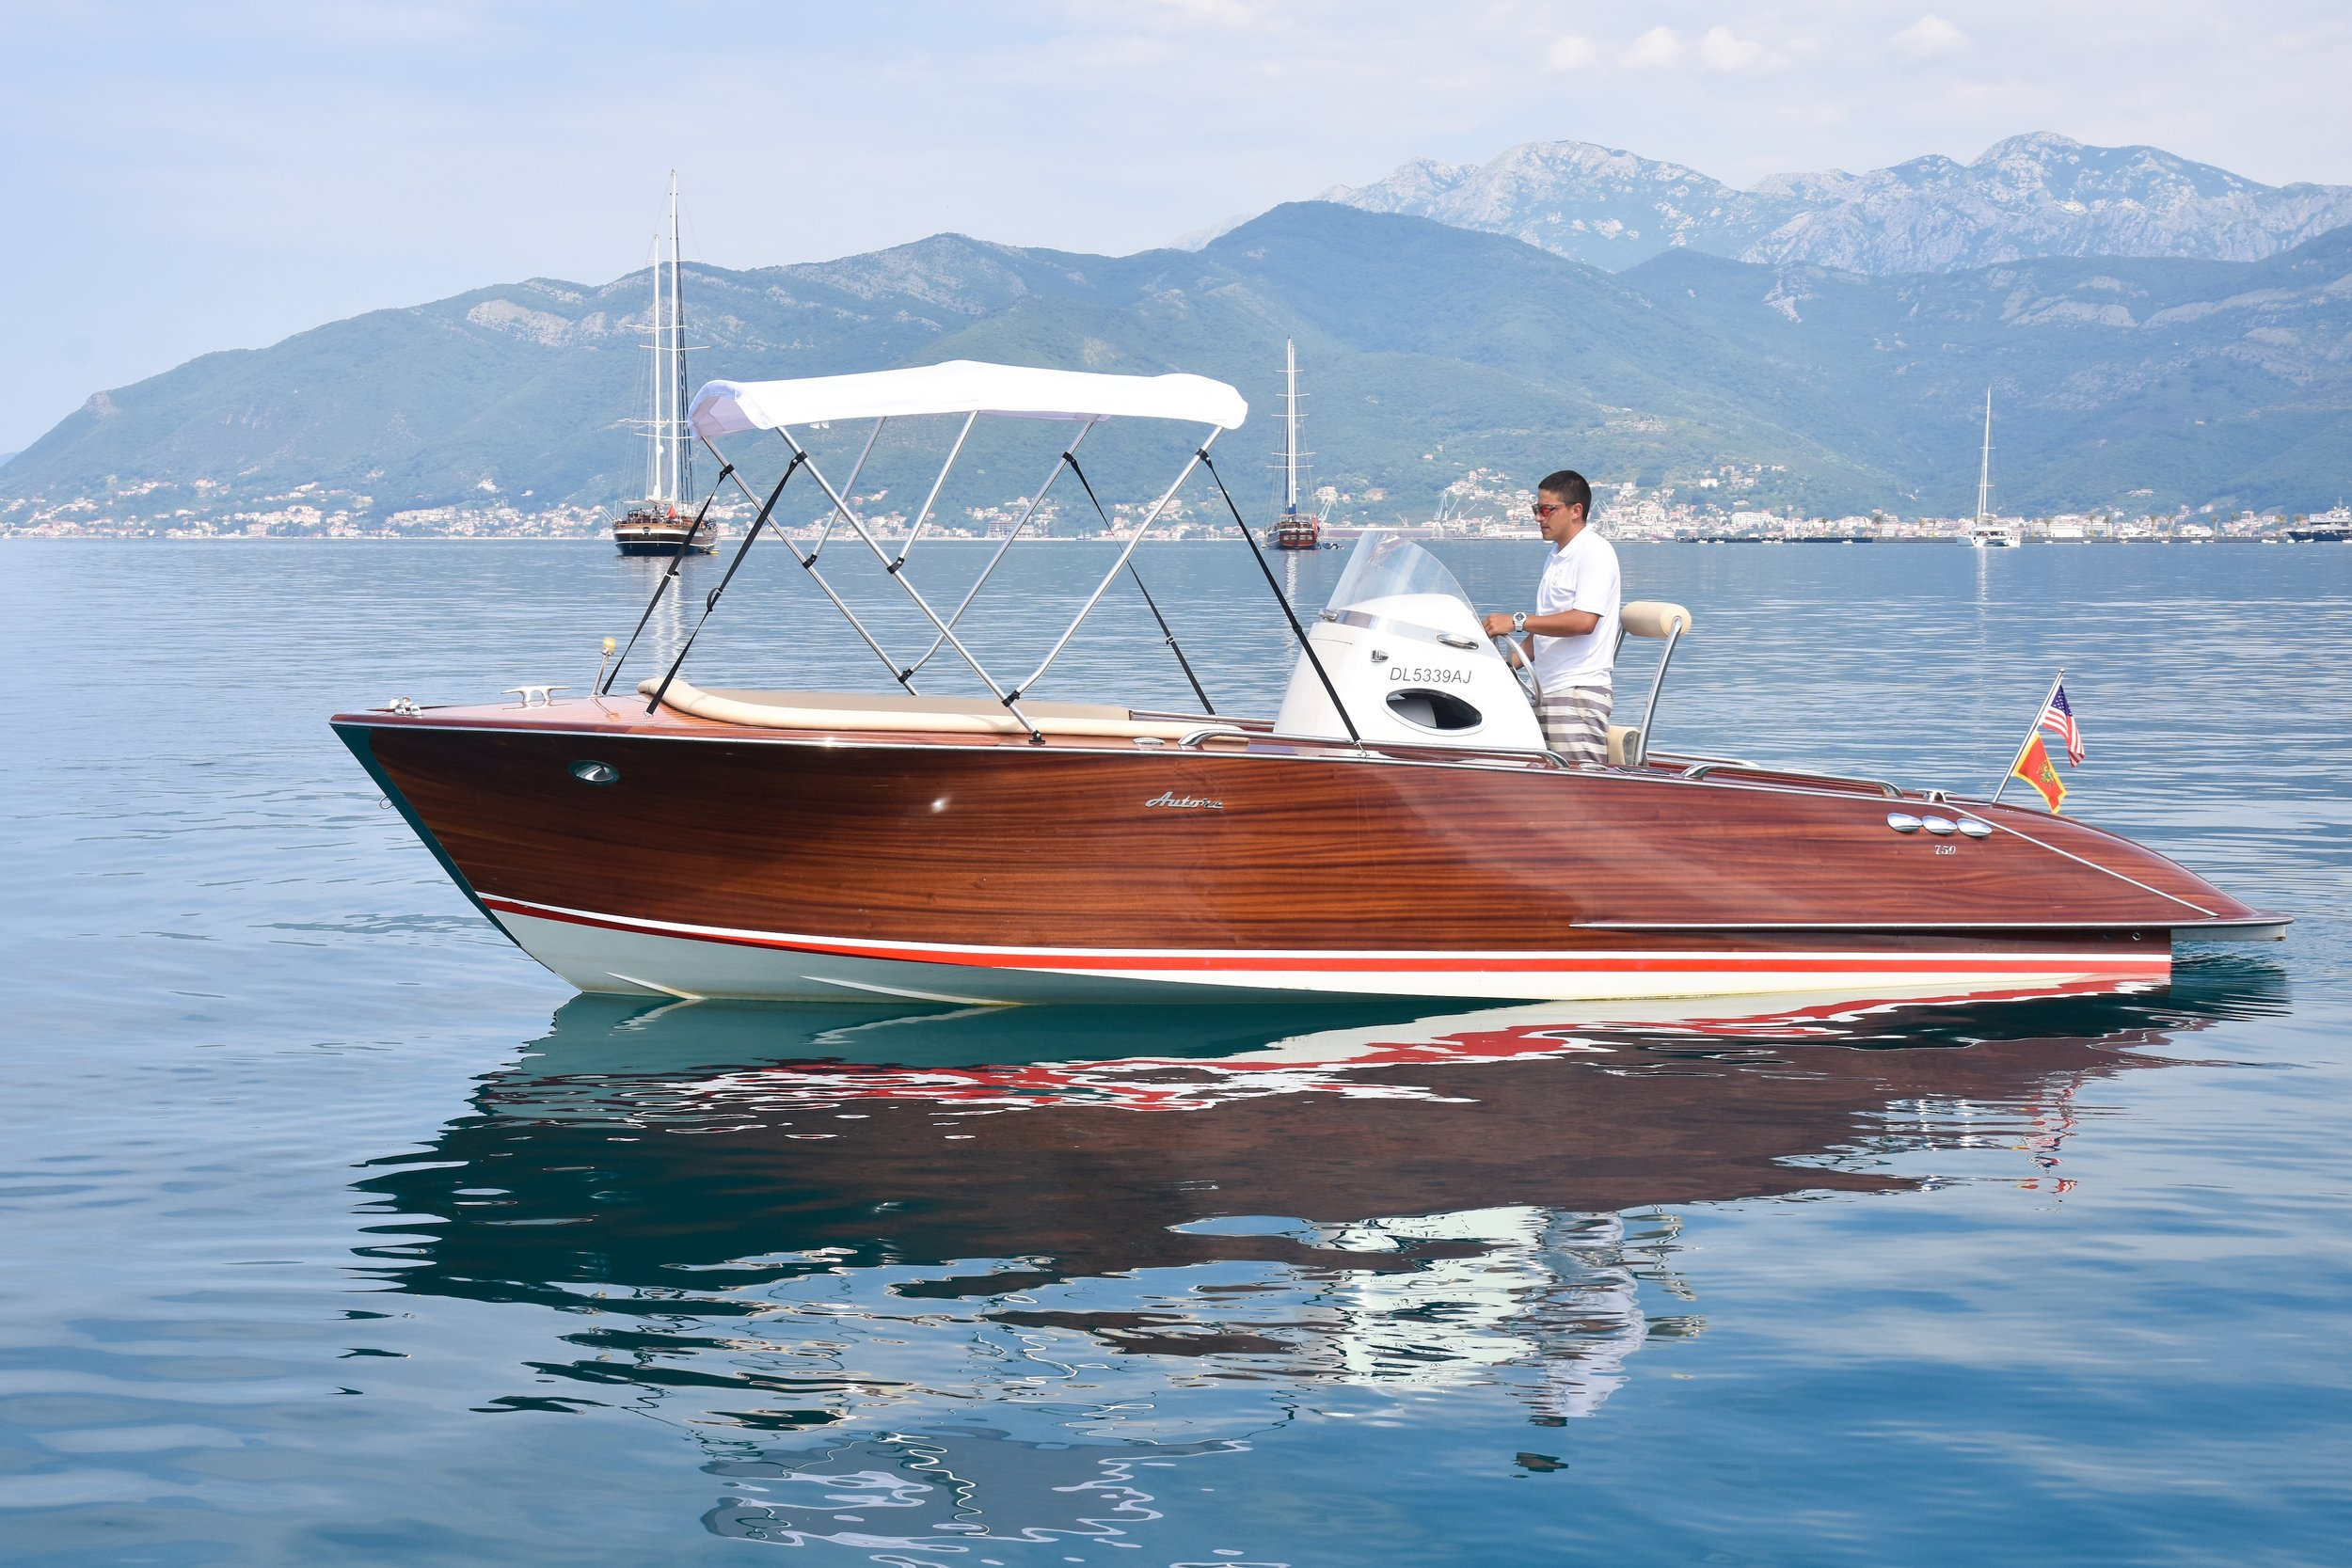 SPECIFICATIONS - CATEGORY: Motor boat/Sports boat BRAND & MODEL: Autore 750 SDYEAR BUILT: 2010LENGHT: 7.5 mBEAM: 2.3 m ENGINE: 1 x 110 kW/148 hP PROPULSION: Stern-drive